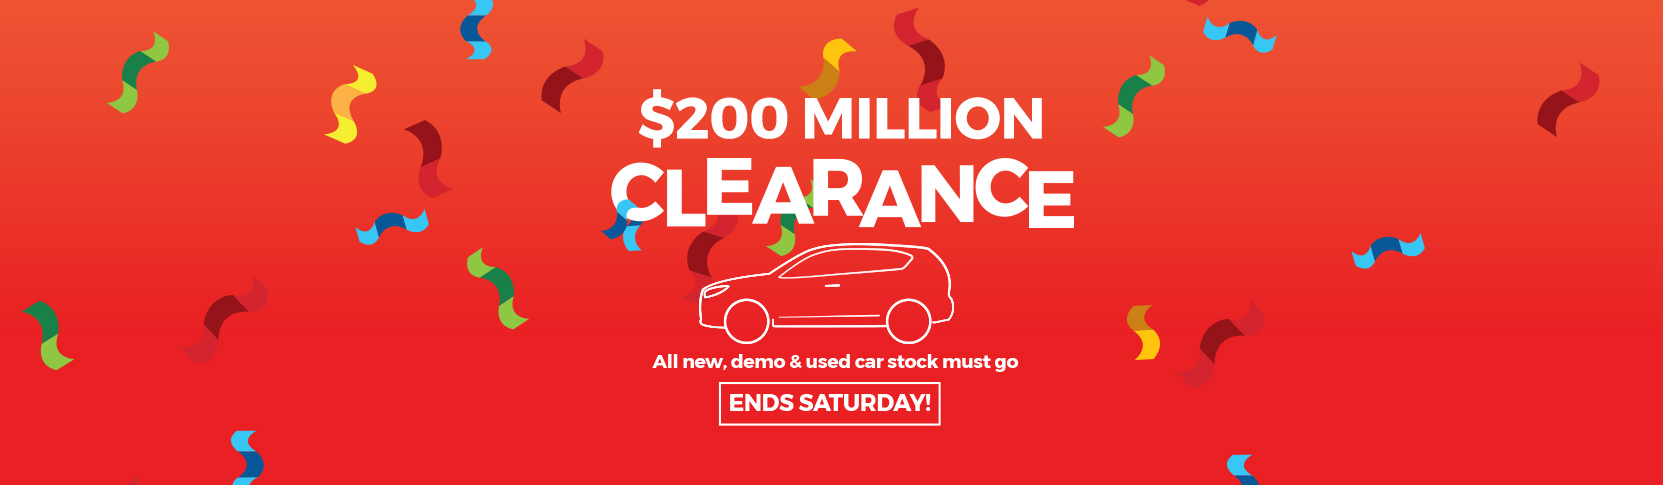 AHG 200 Million Clearance Sale